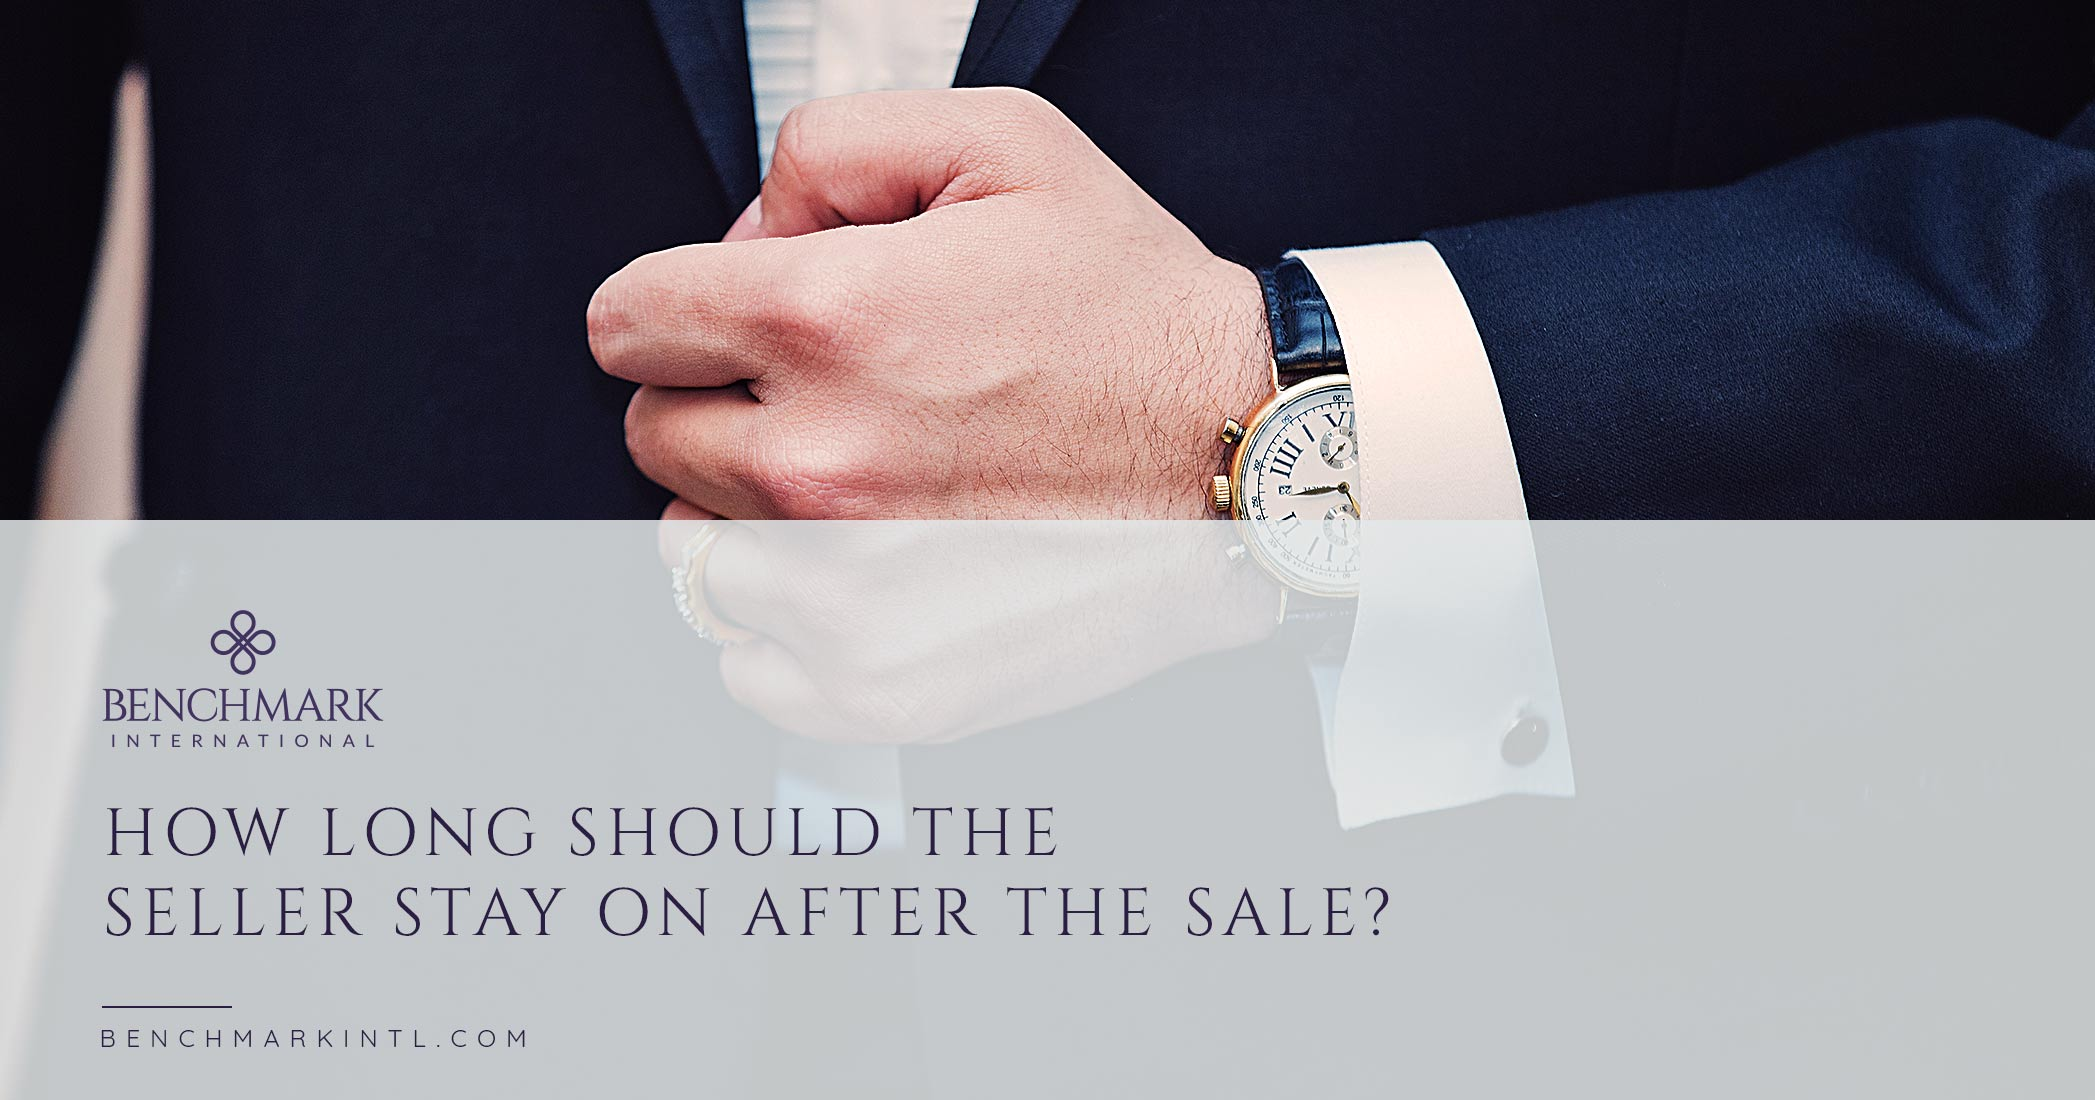 How Long Should The Seller Stay On After The Sale